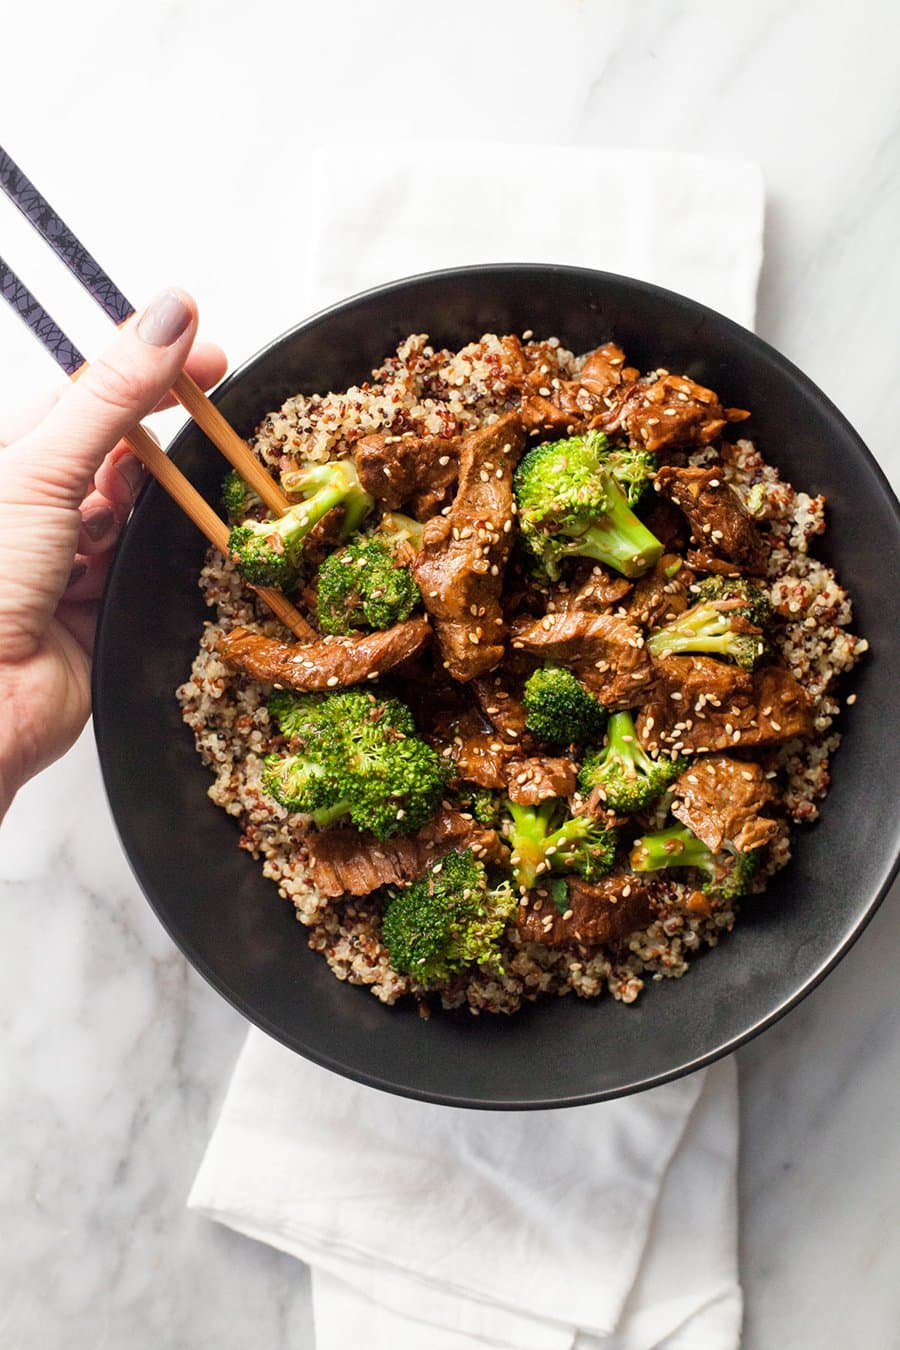 Slow Cooker Beef and Broccoli with Quinoa | Wholefully